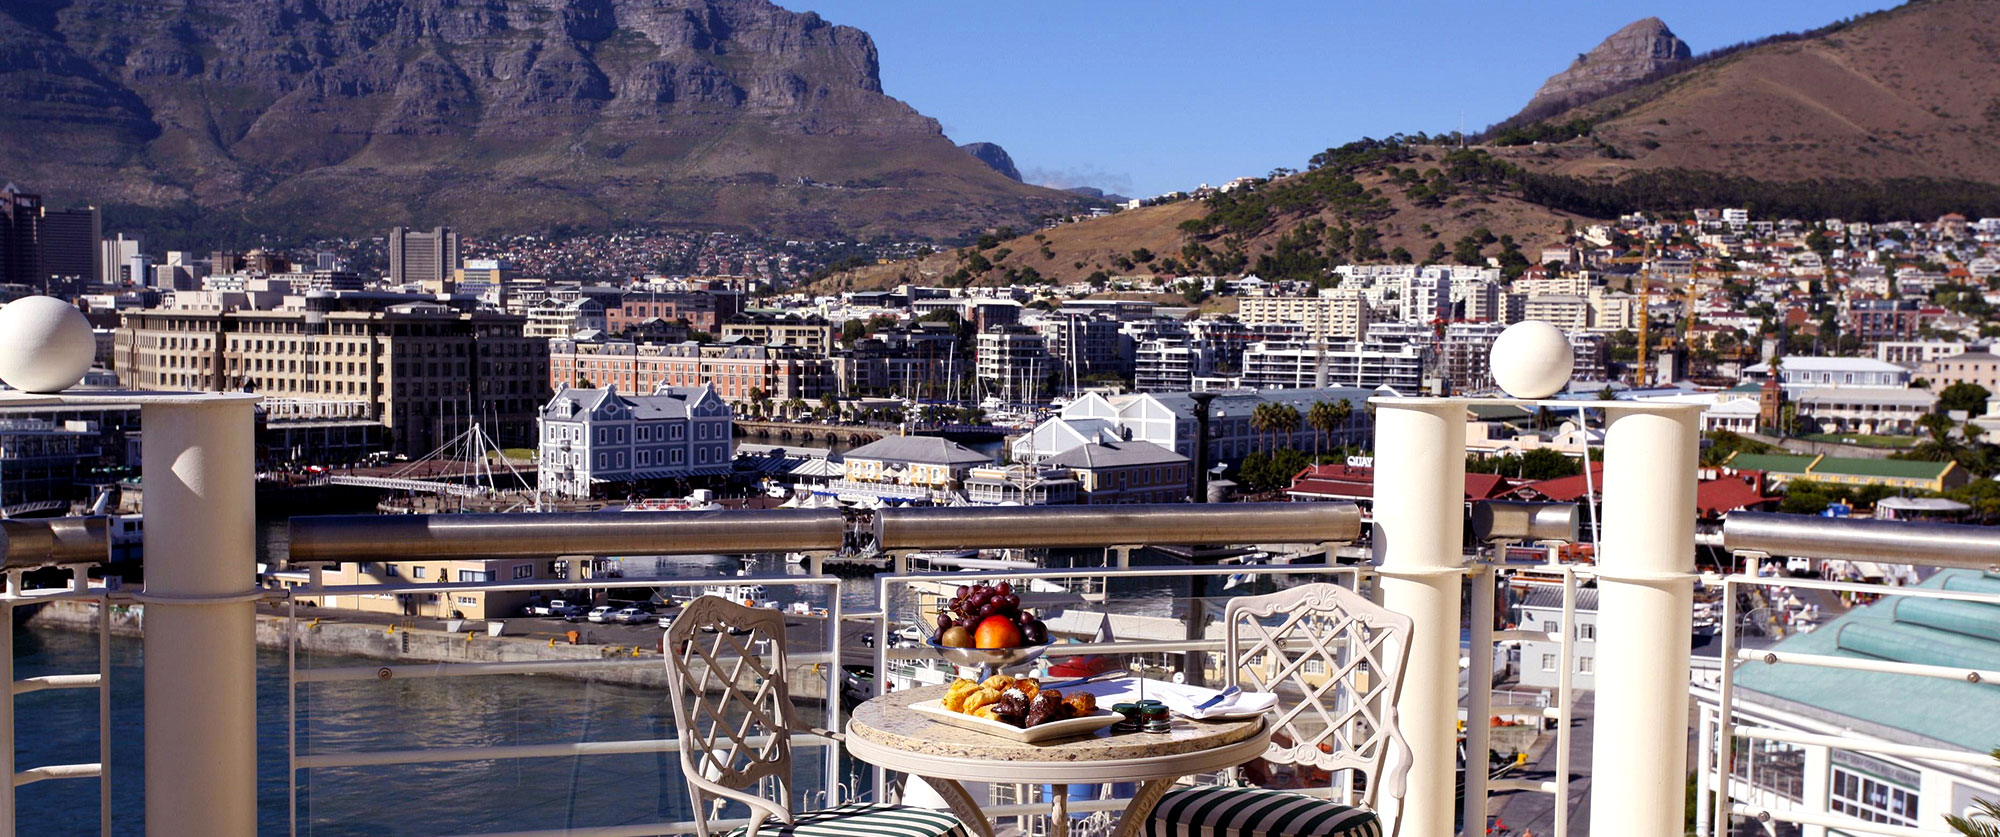 South Africa Highlights - Table Bay Hotel - Cape Town